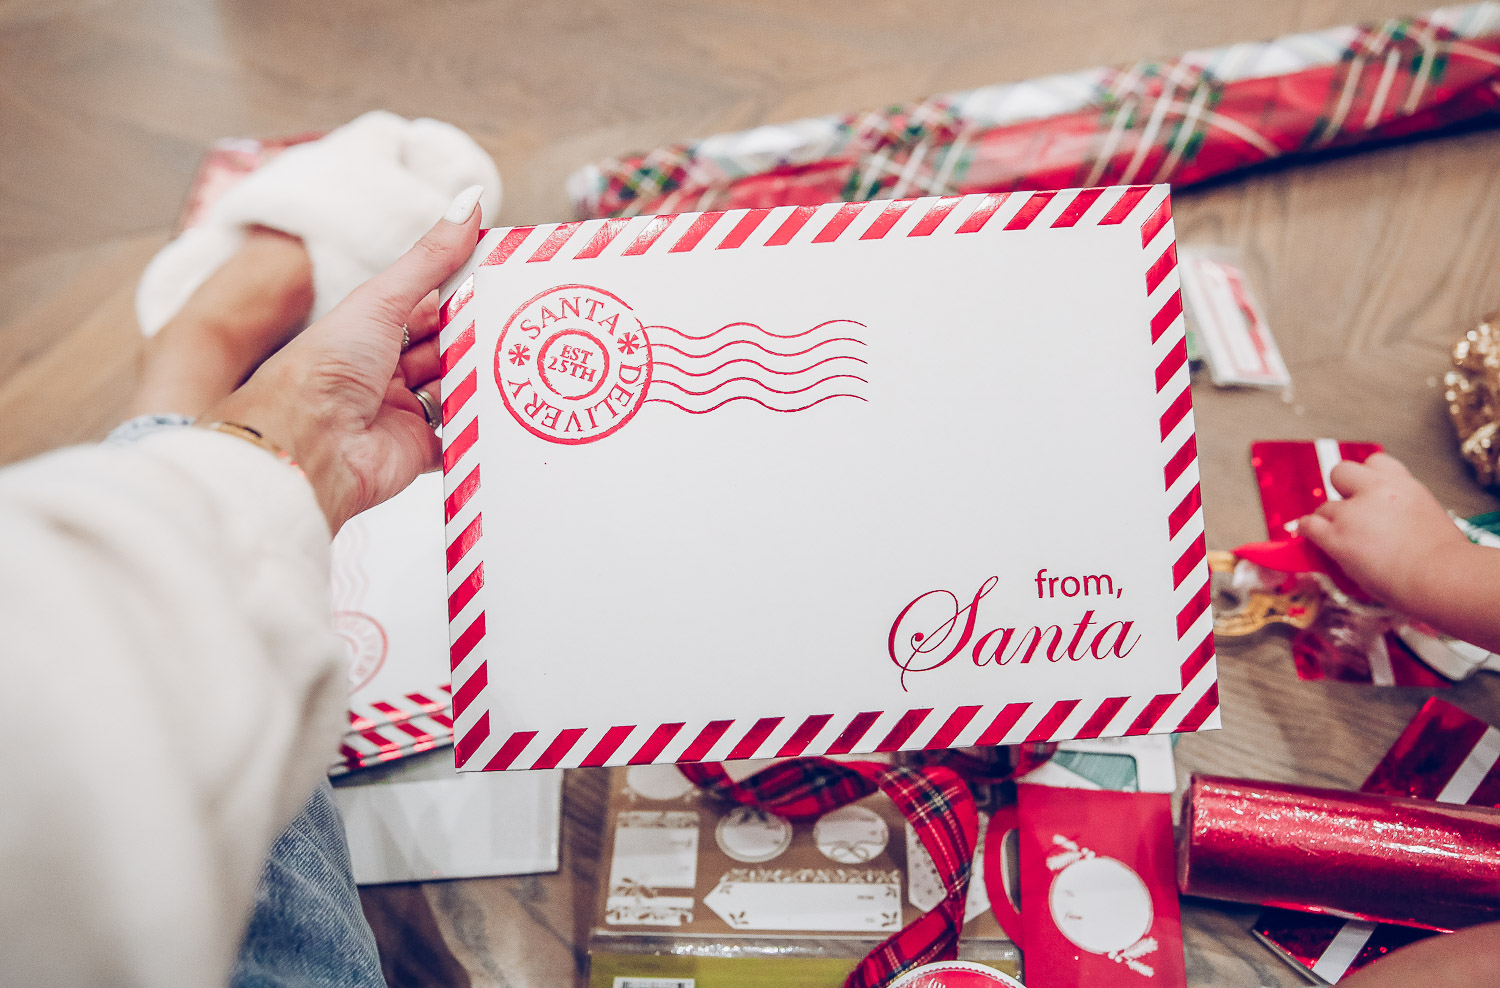 walmart gift wrap christmas 2020, shop hello holidays christmas tree, magnetic me PJs, emily ann gemma-10 |Gift Wrapping Ideas by popular US life and style blog, The Sweetest Thing: image of a woman holding a From Santa cardboard envelope.